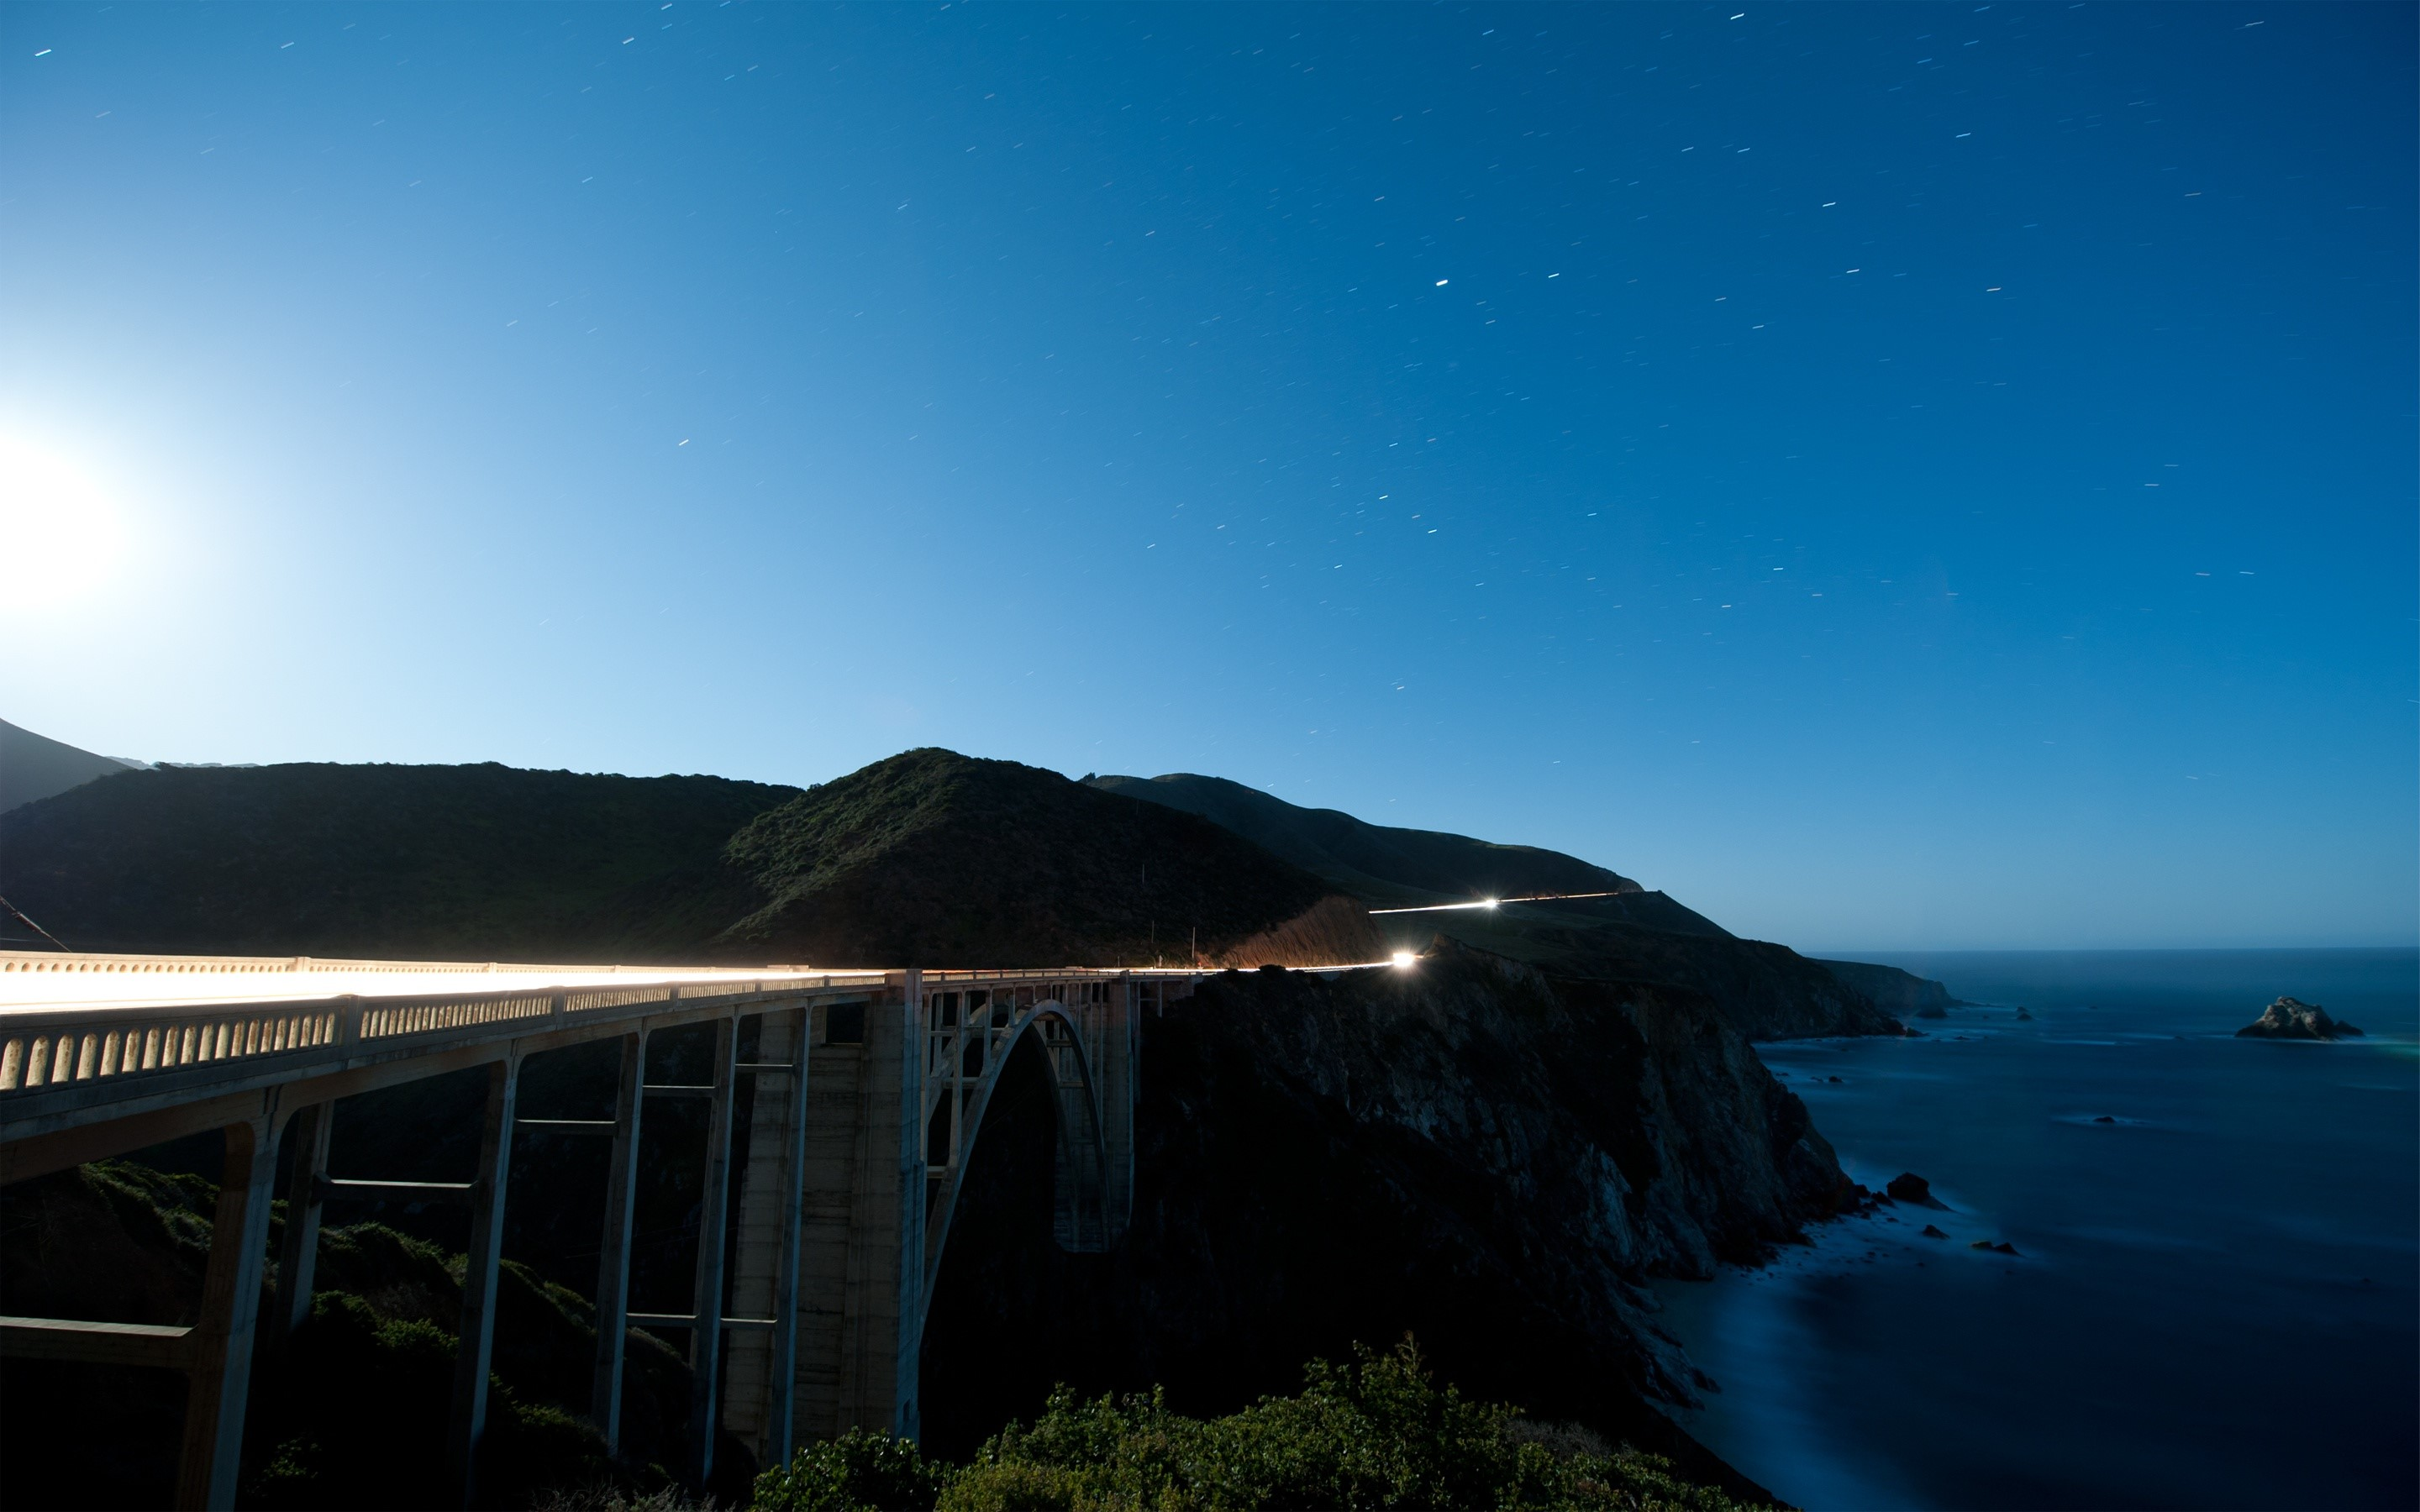 Wallpaper Bixby creek bridge